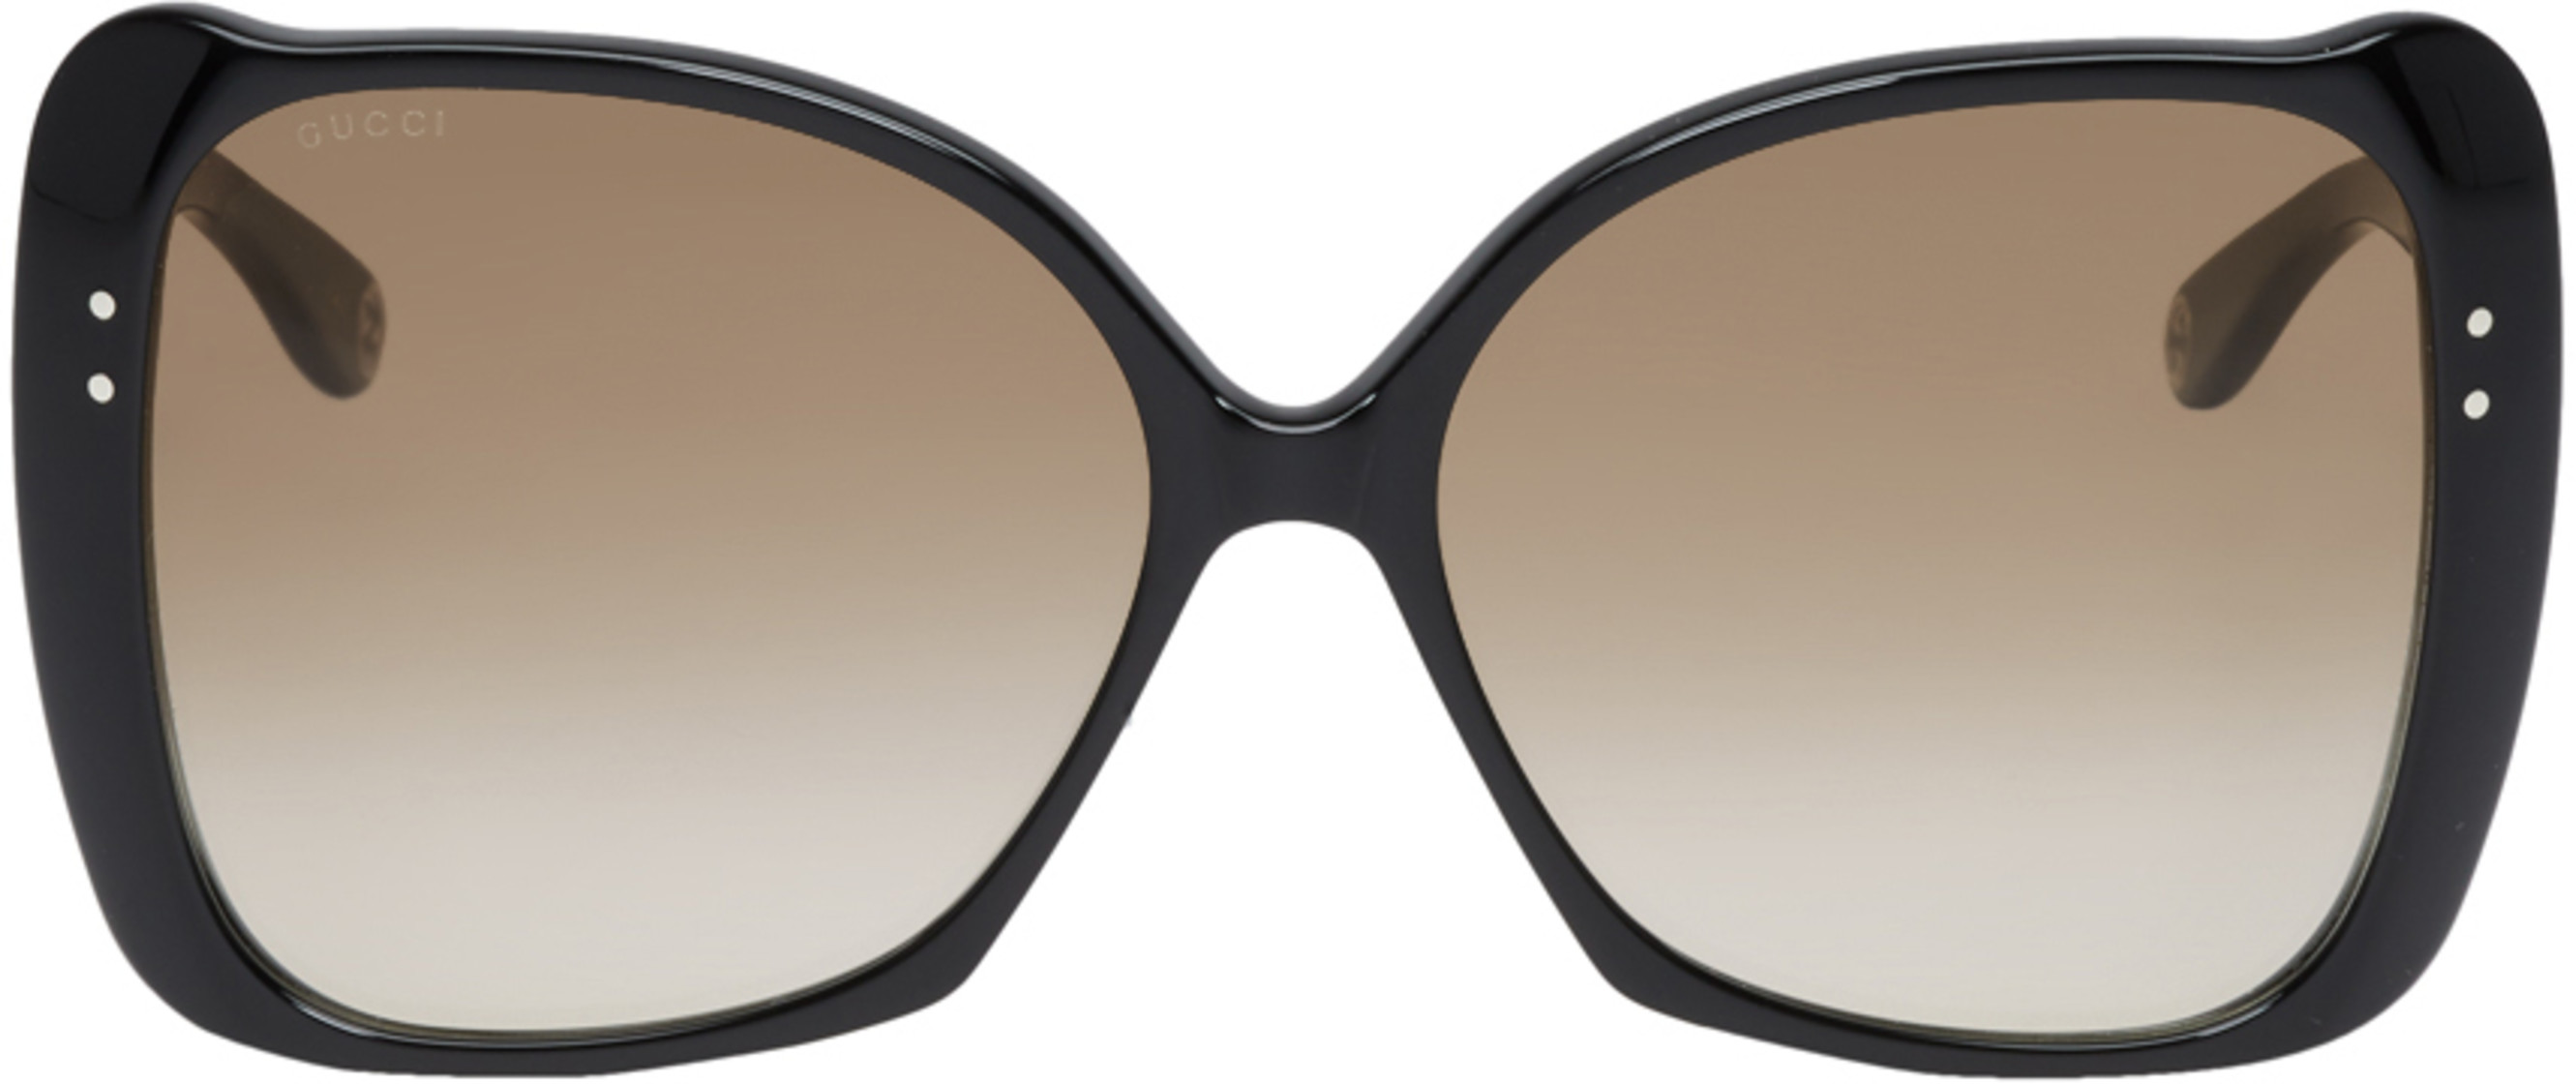 b26dd1303edbc Gucci sunglasses for Women